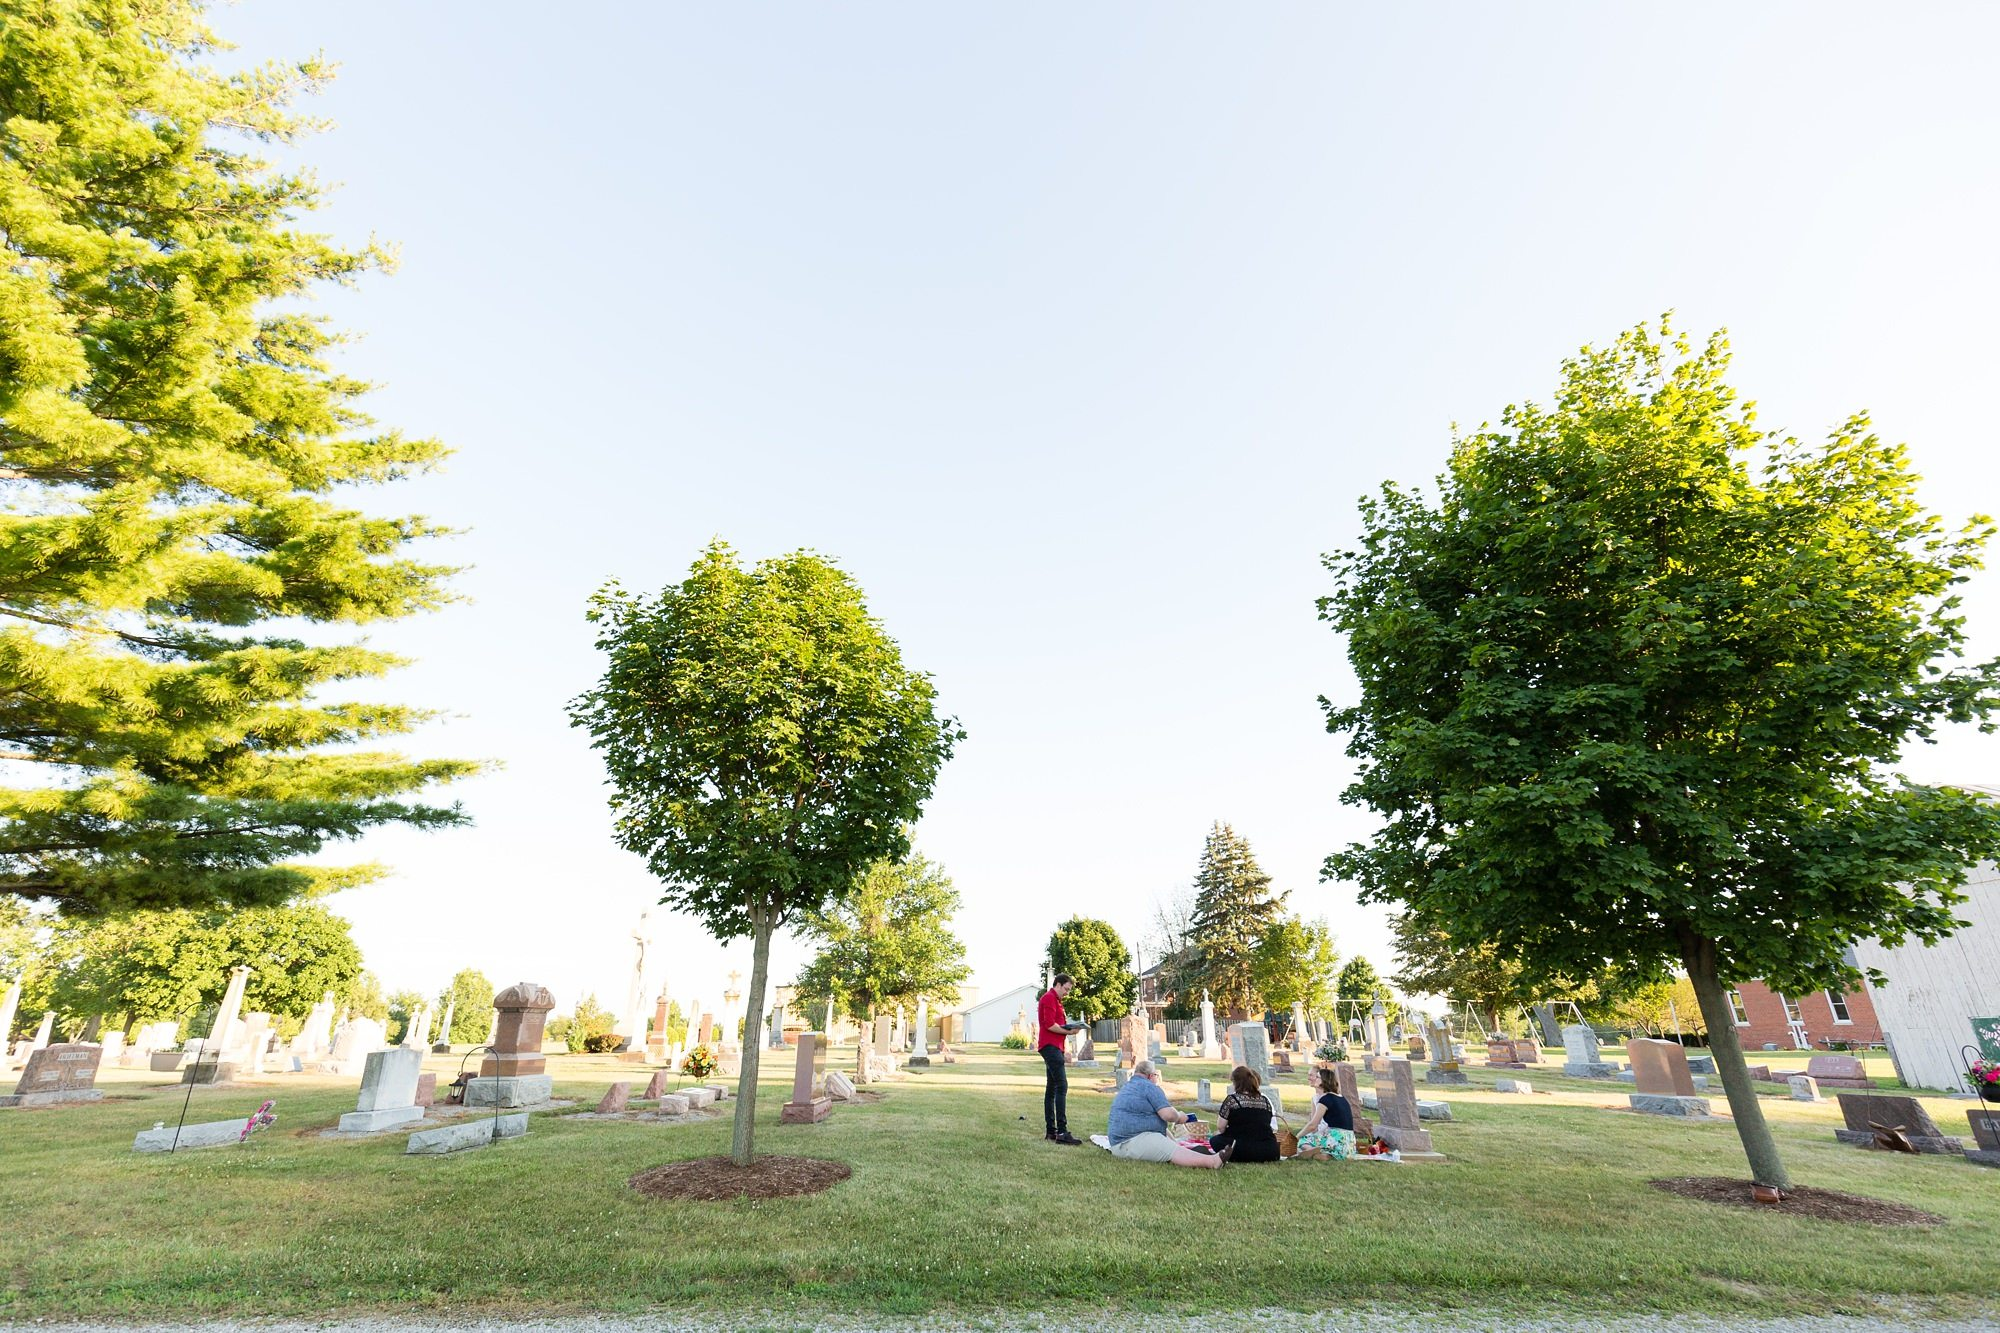 Intimate wedding by mother's grave in Ft. Wayne Indiana